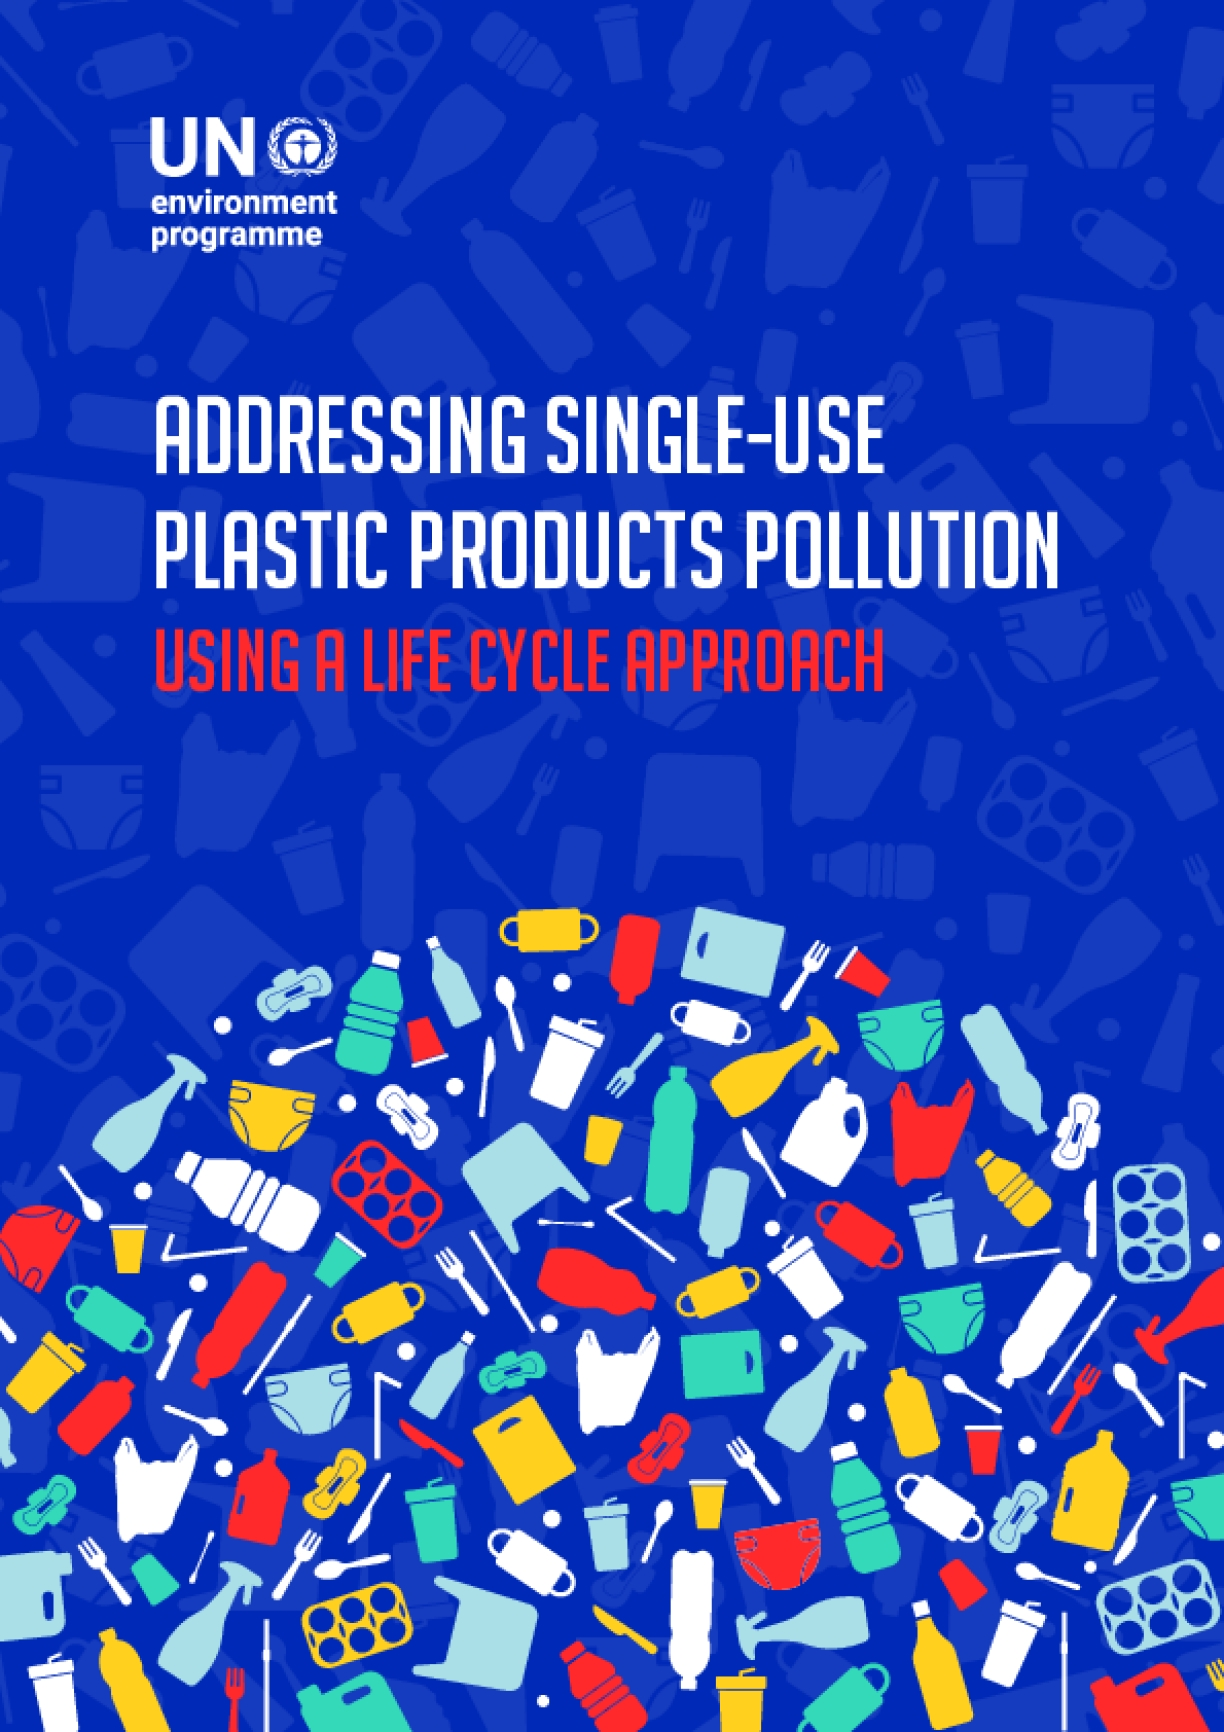 Addressing Single-Use Plastic Products Pollution Using a Life Cycle Approach